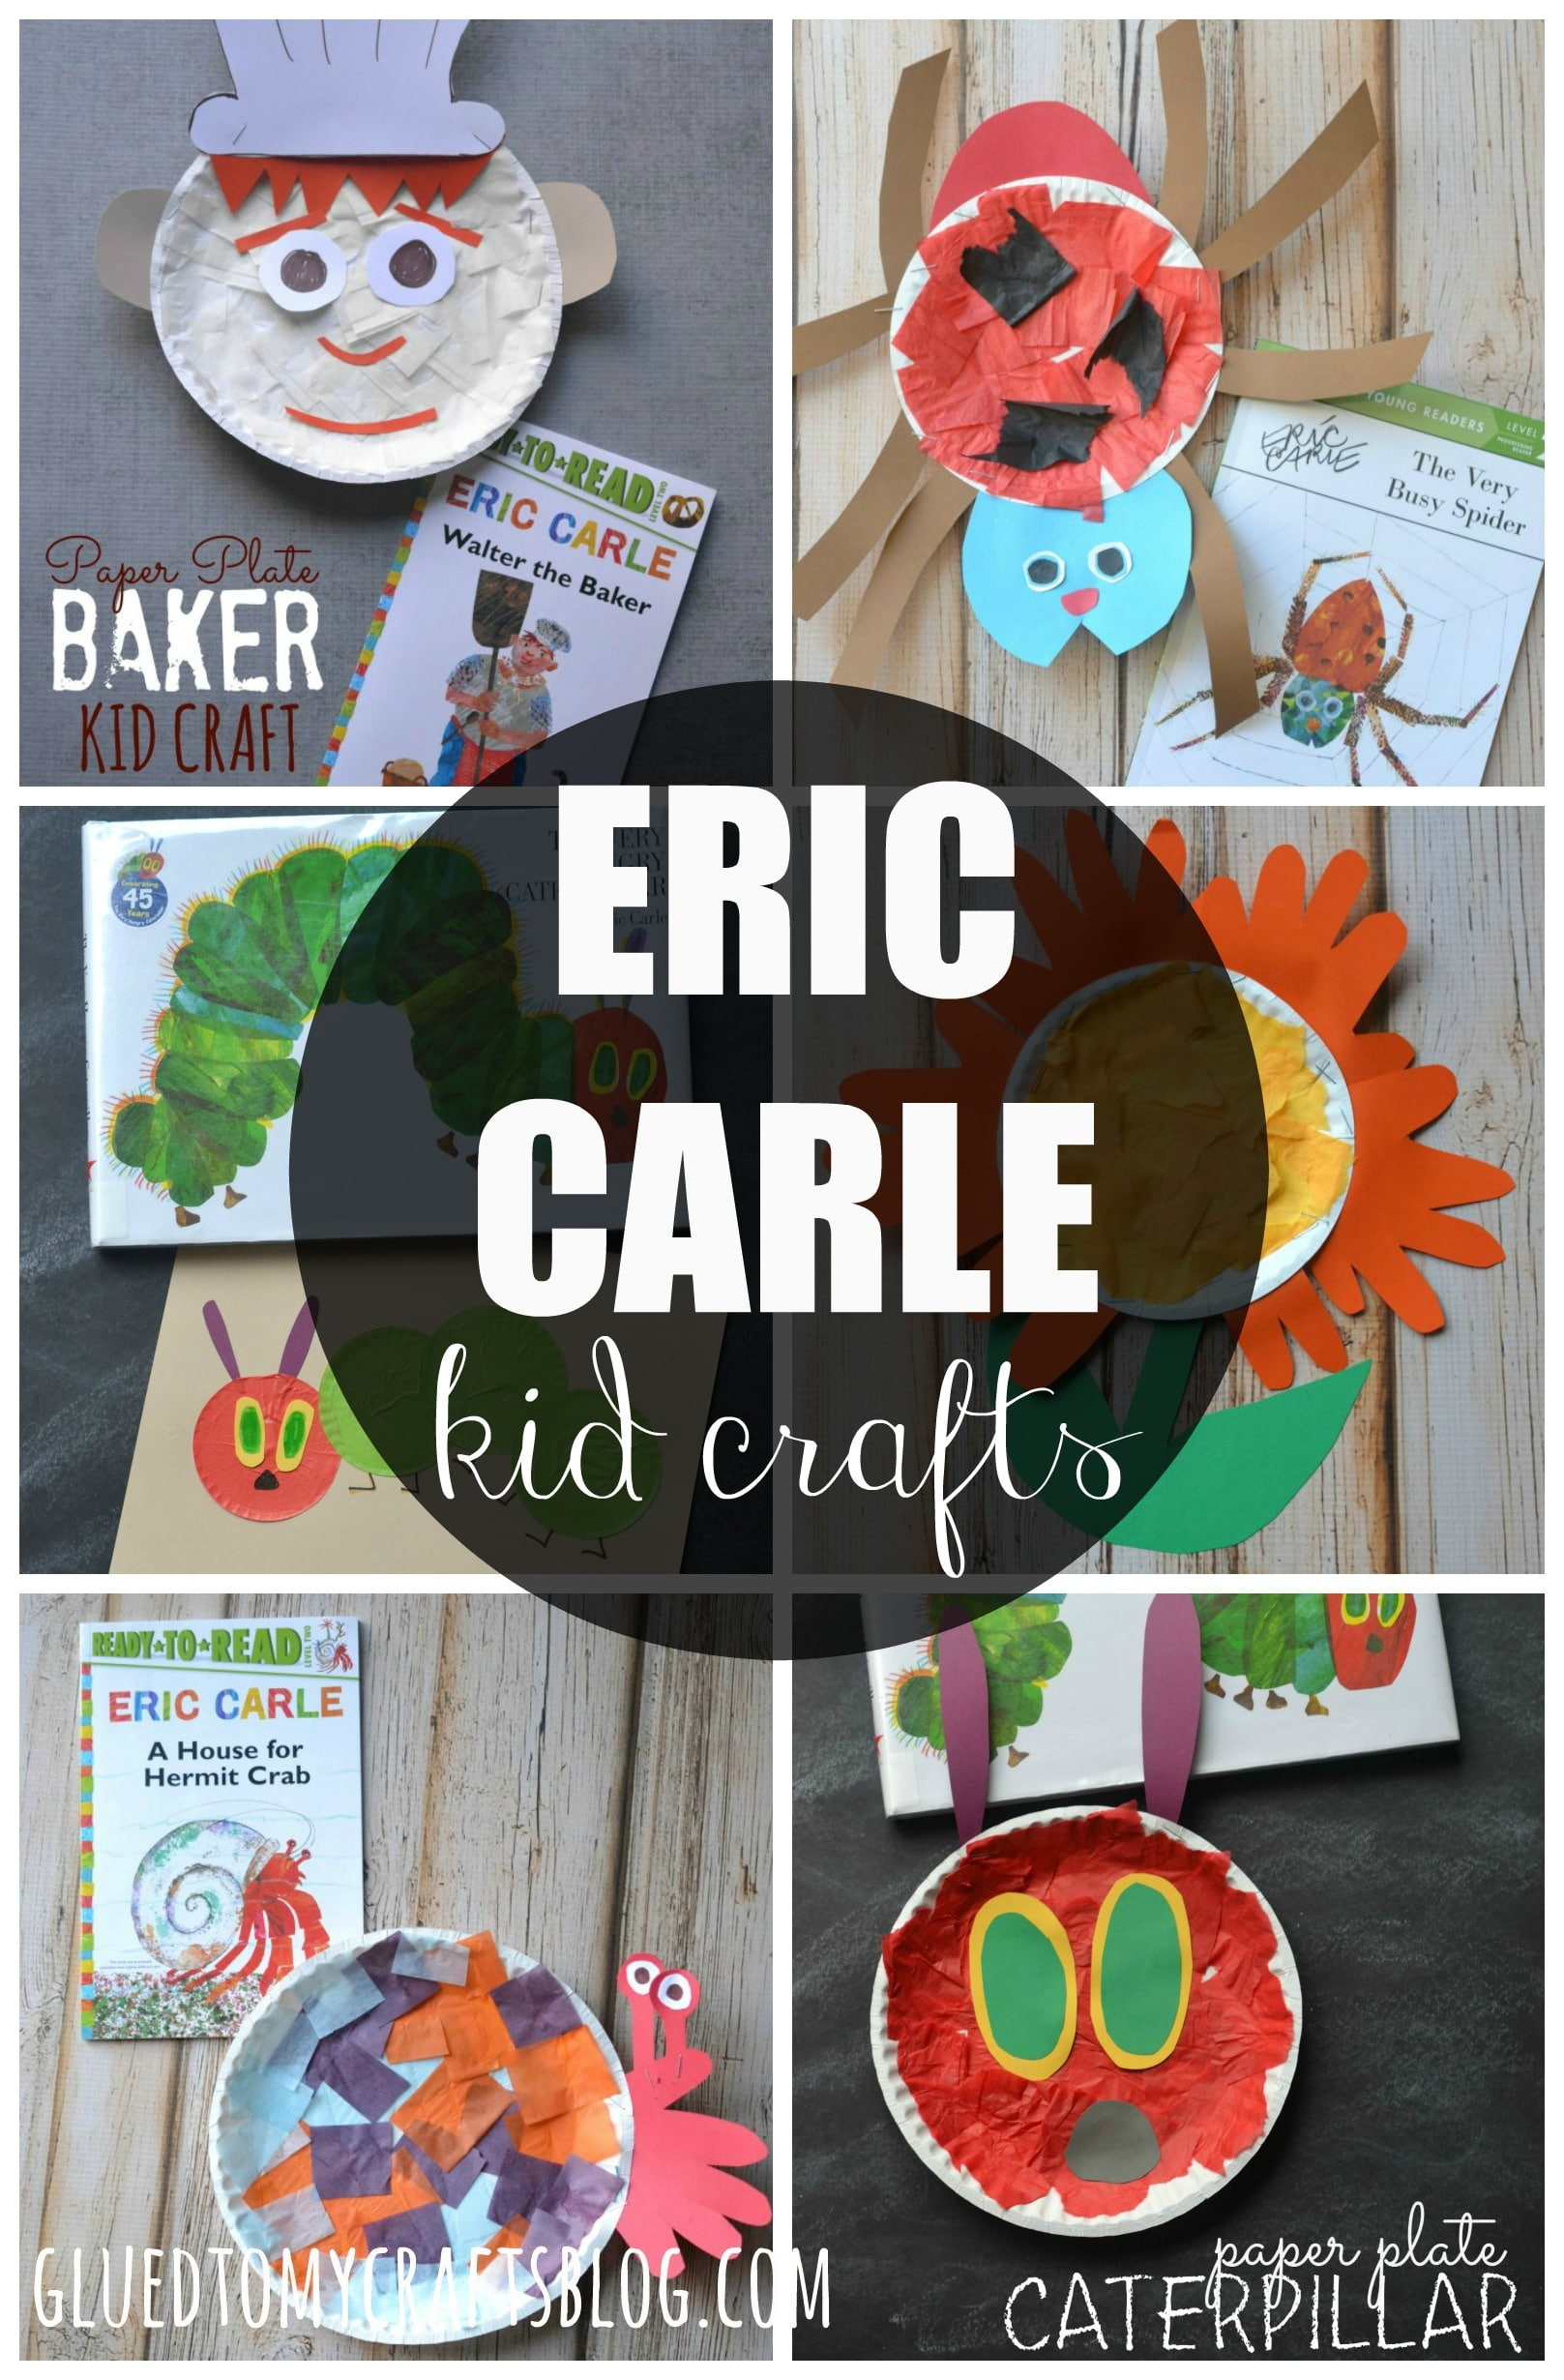 Awesome Eric Carle Kid Craft Roundup For A Good Story Time